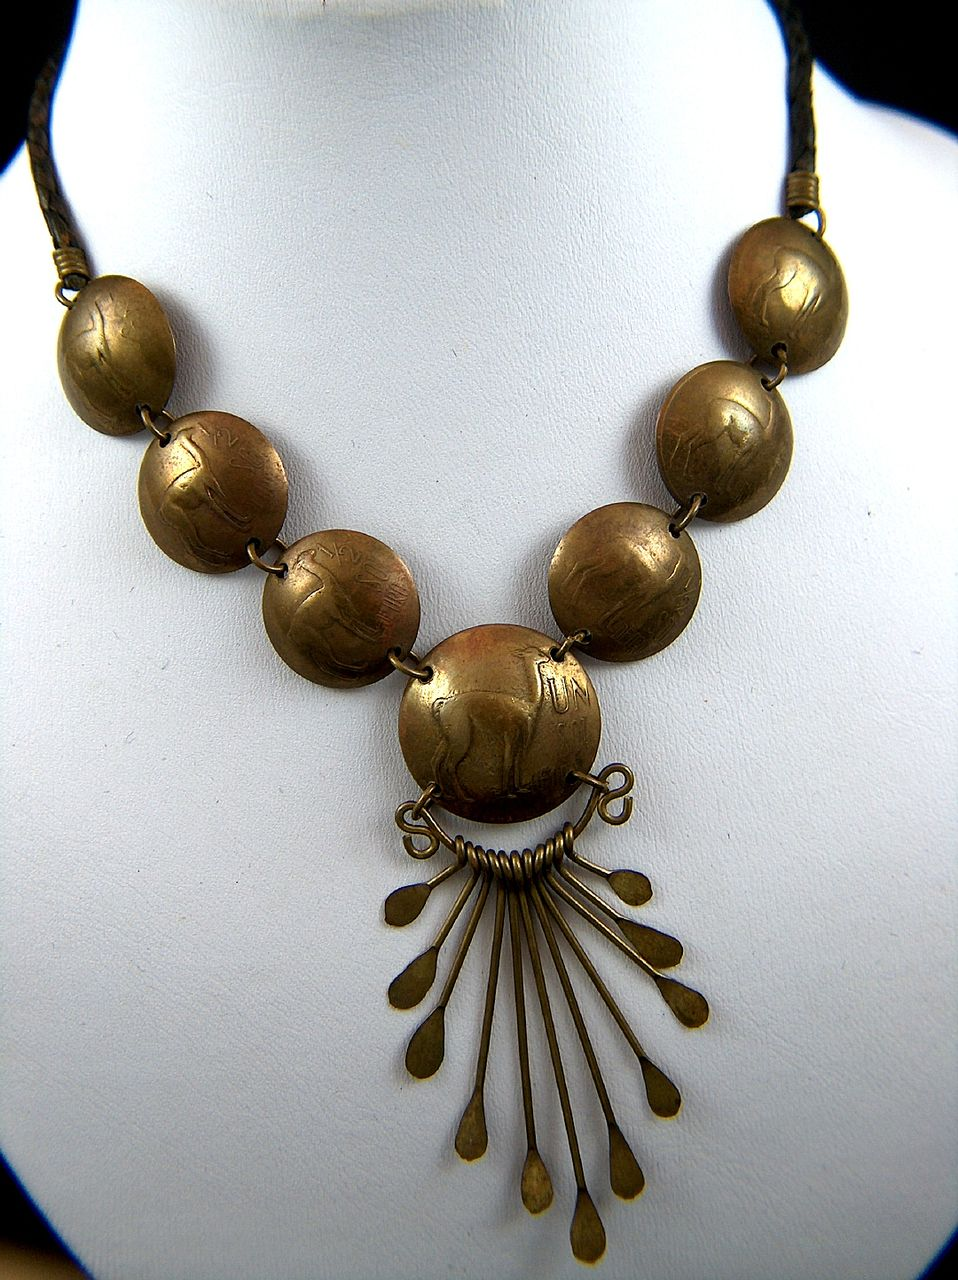 Vintage 1970s Peru Sol de Oro Brass Coin Necklace